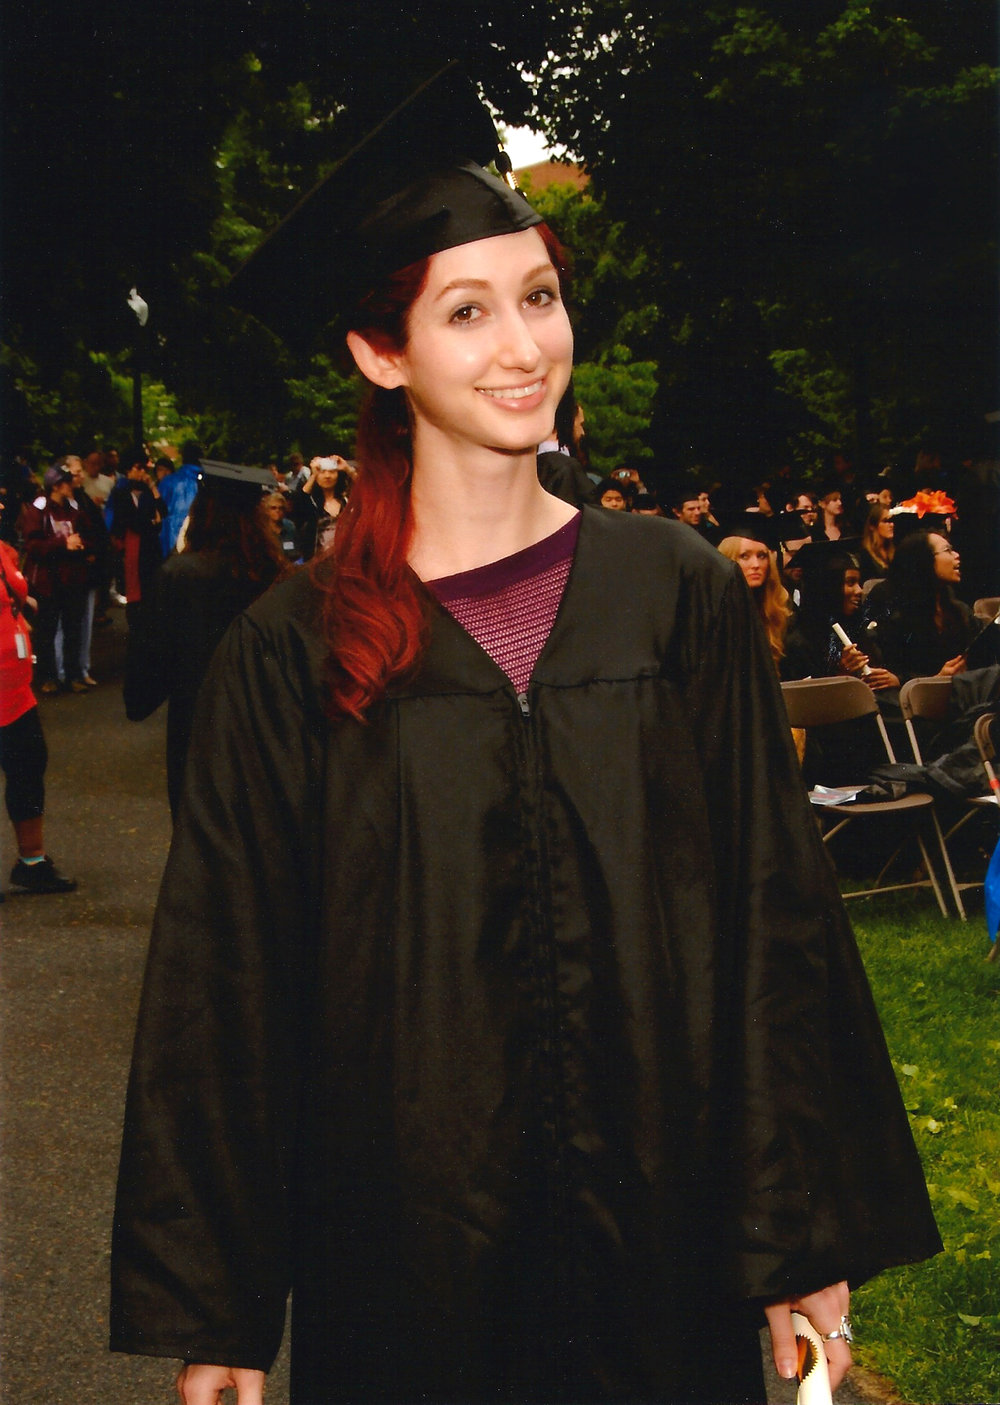 Geena Matuson (@geenamatuson) graduating from Massachusetts College of Art & Design with a BFA in Film/Video, May 2013.